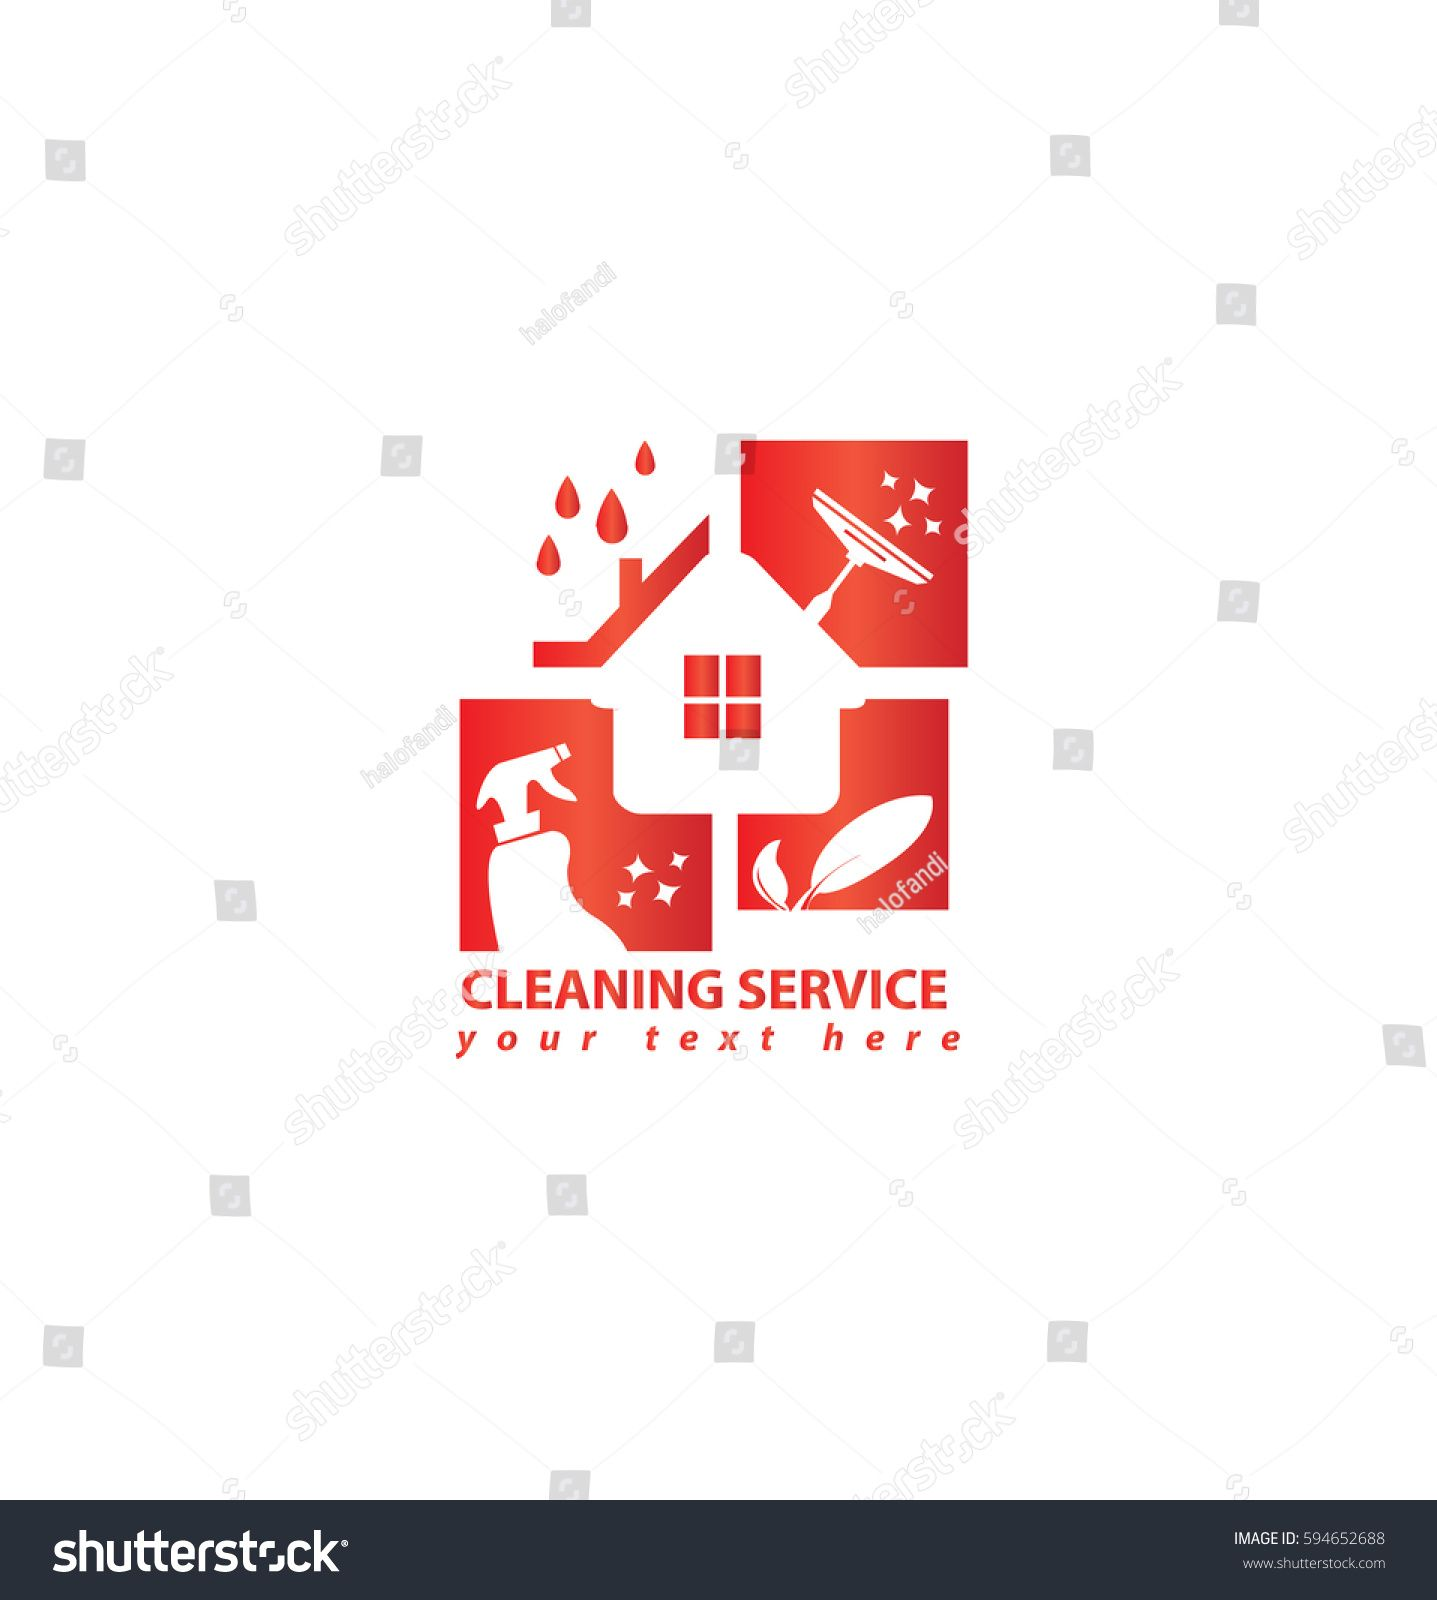 Vector Eco Cleaning Service Of House Business Logo Design In Red